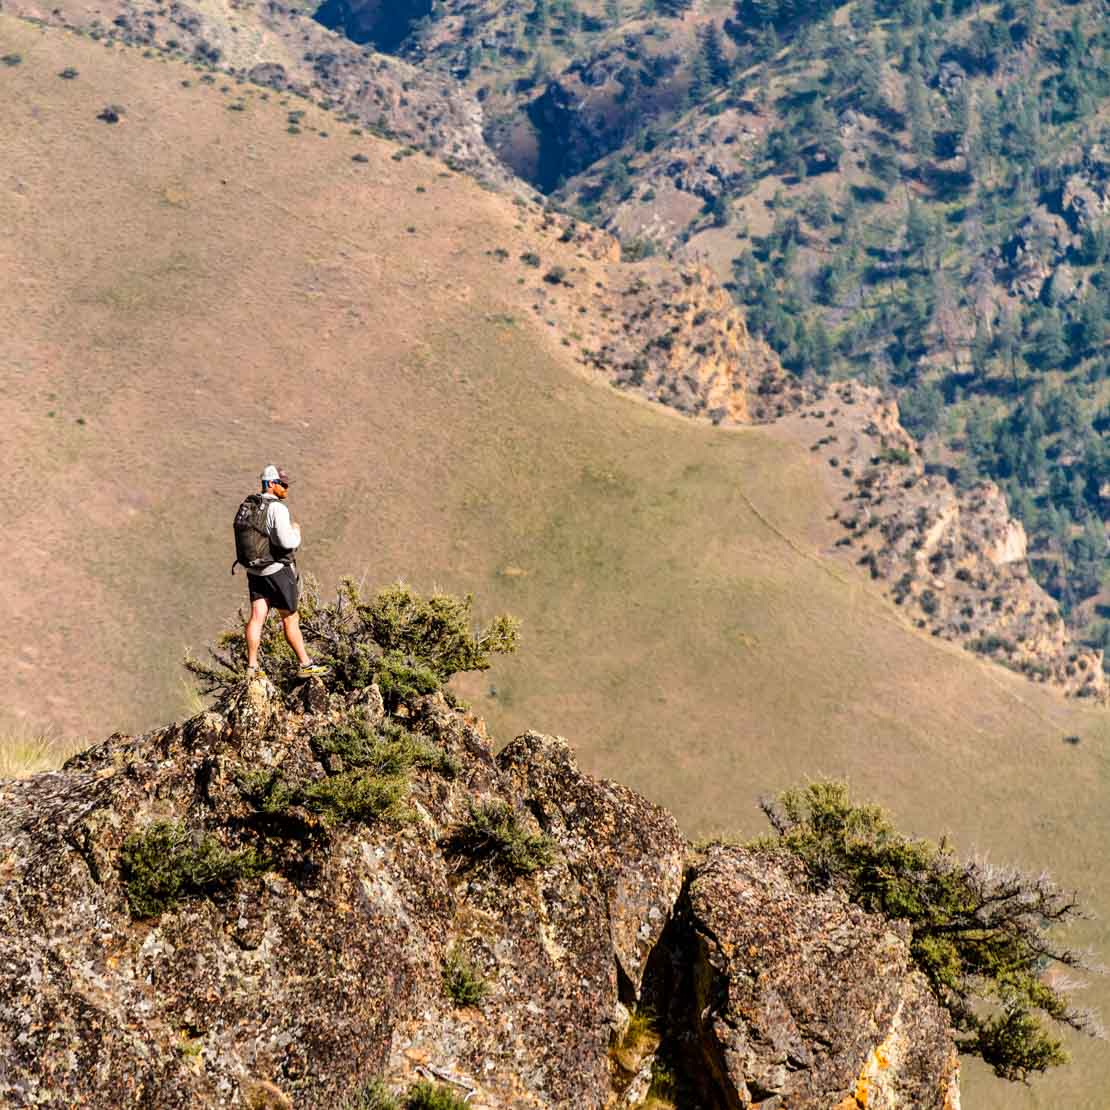 Hiking Viewpoint